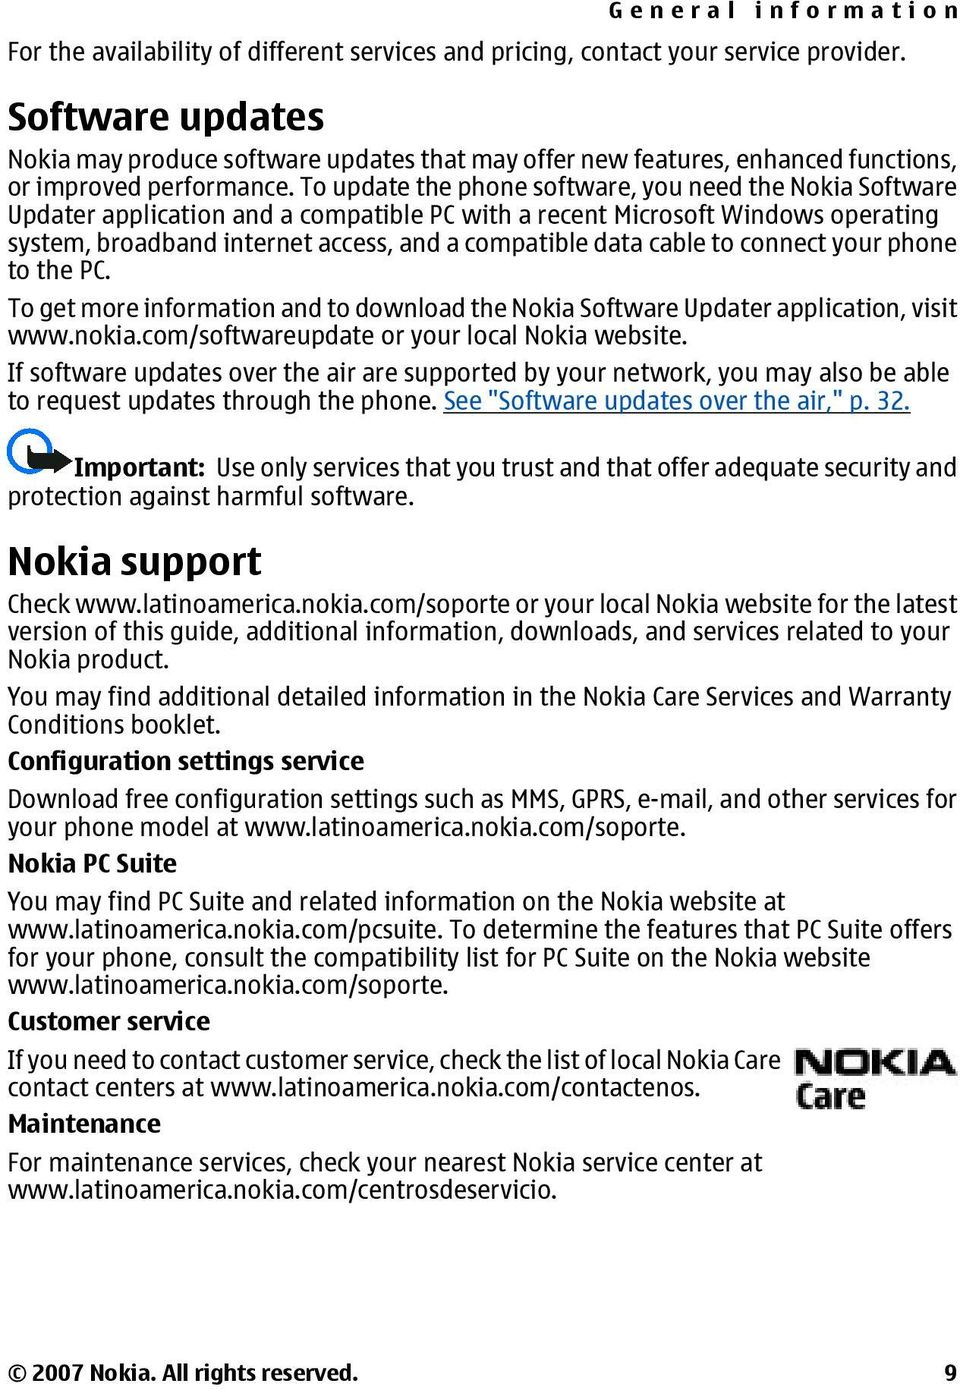 To update the phone software, you need the Nokia Software Updater application and a compatible PC with a recent Microsoft Windows operating system, broadband internet access, and a compatible data